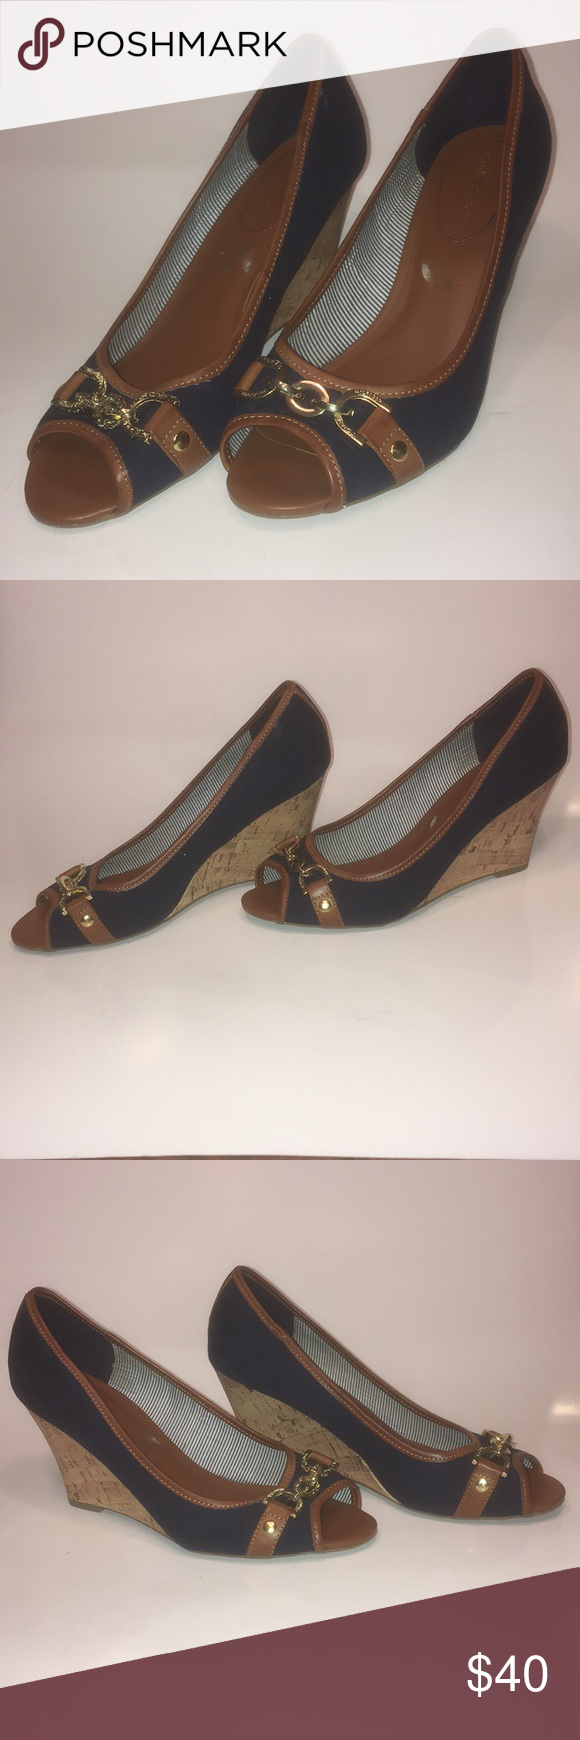 Tommy Hilfiger Blue Wedge Shoes This is a great pair of wedges in wonderful condition. They are blue with brown trim, and wonderful gold tone accent pieces that show no signs of wear. Tommy Hilfiger Shoes Wedges